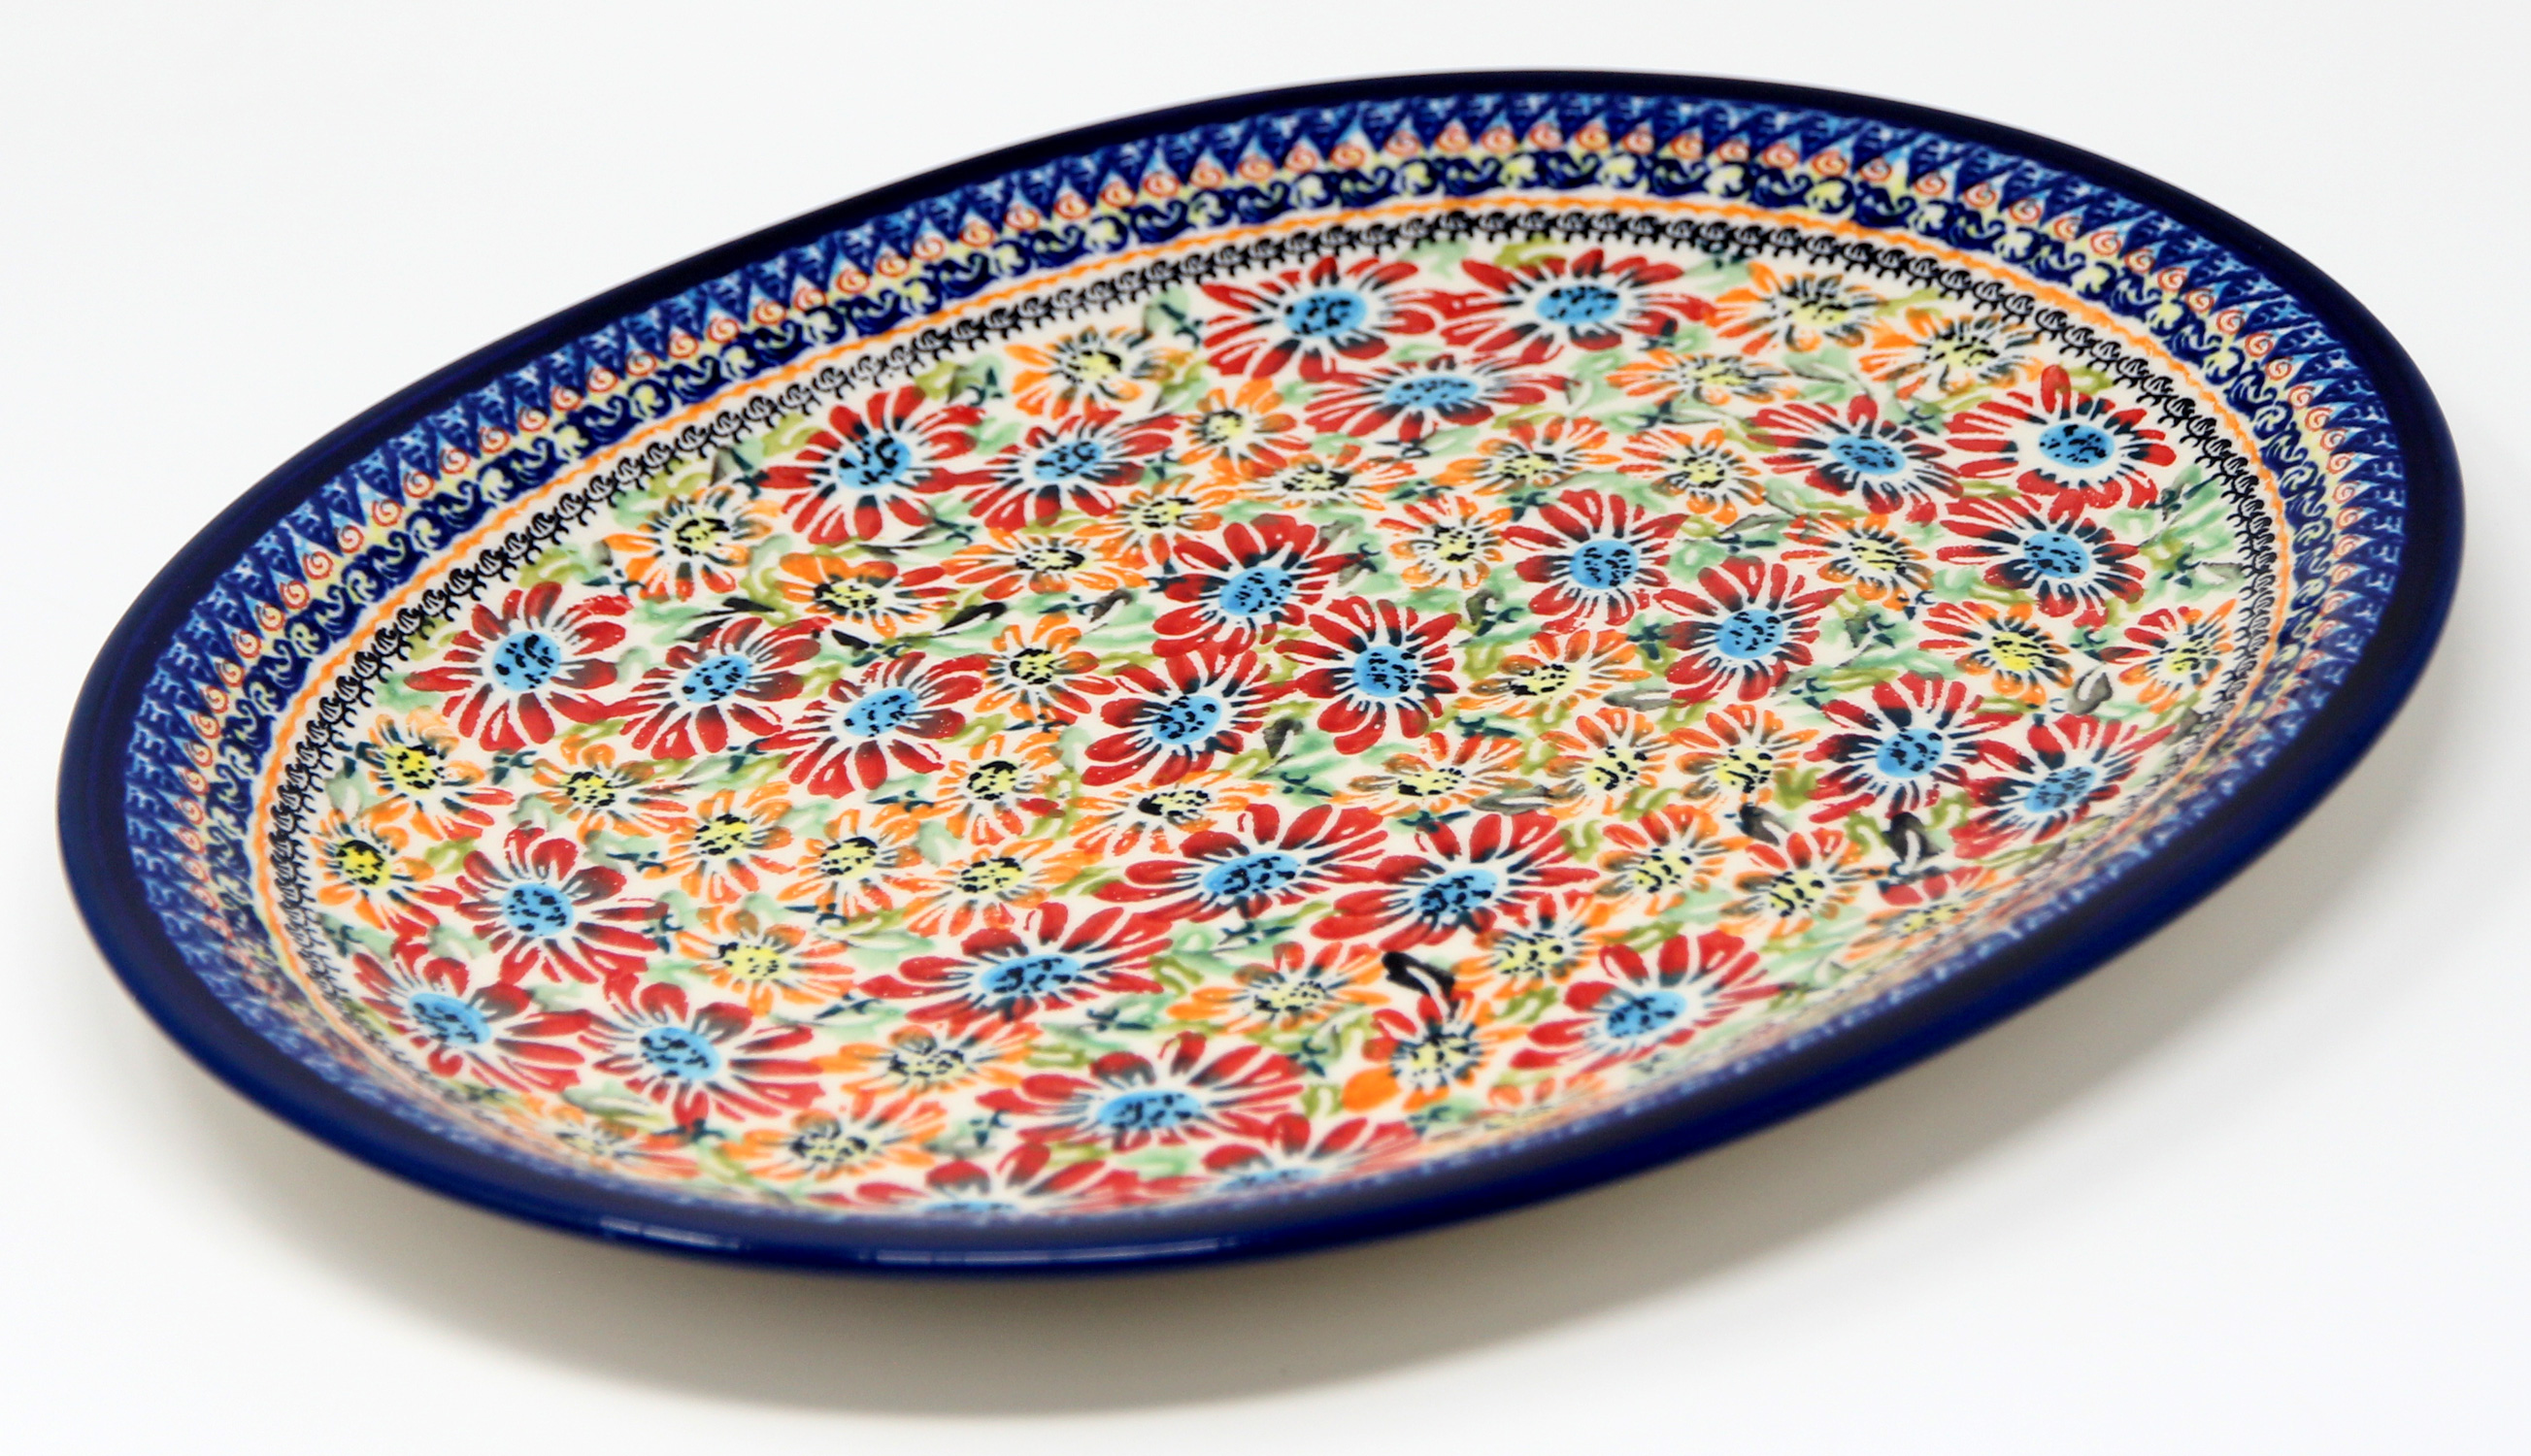 Large Serving Platter in Floral Garden Polish Pottery Pattern painted by Anna Janczyk